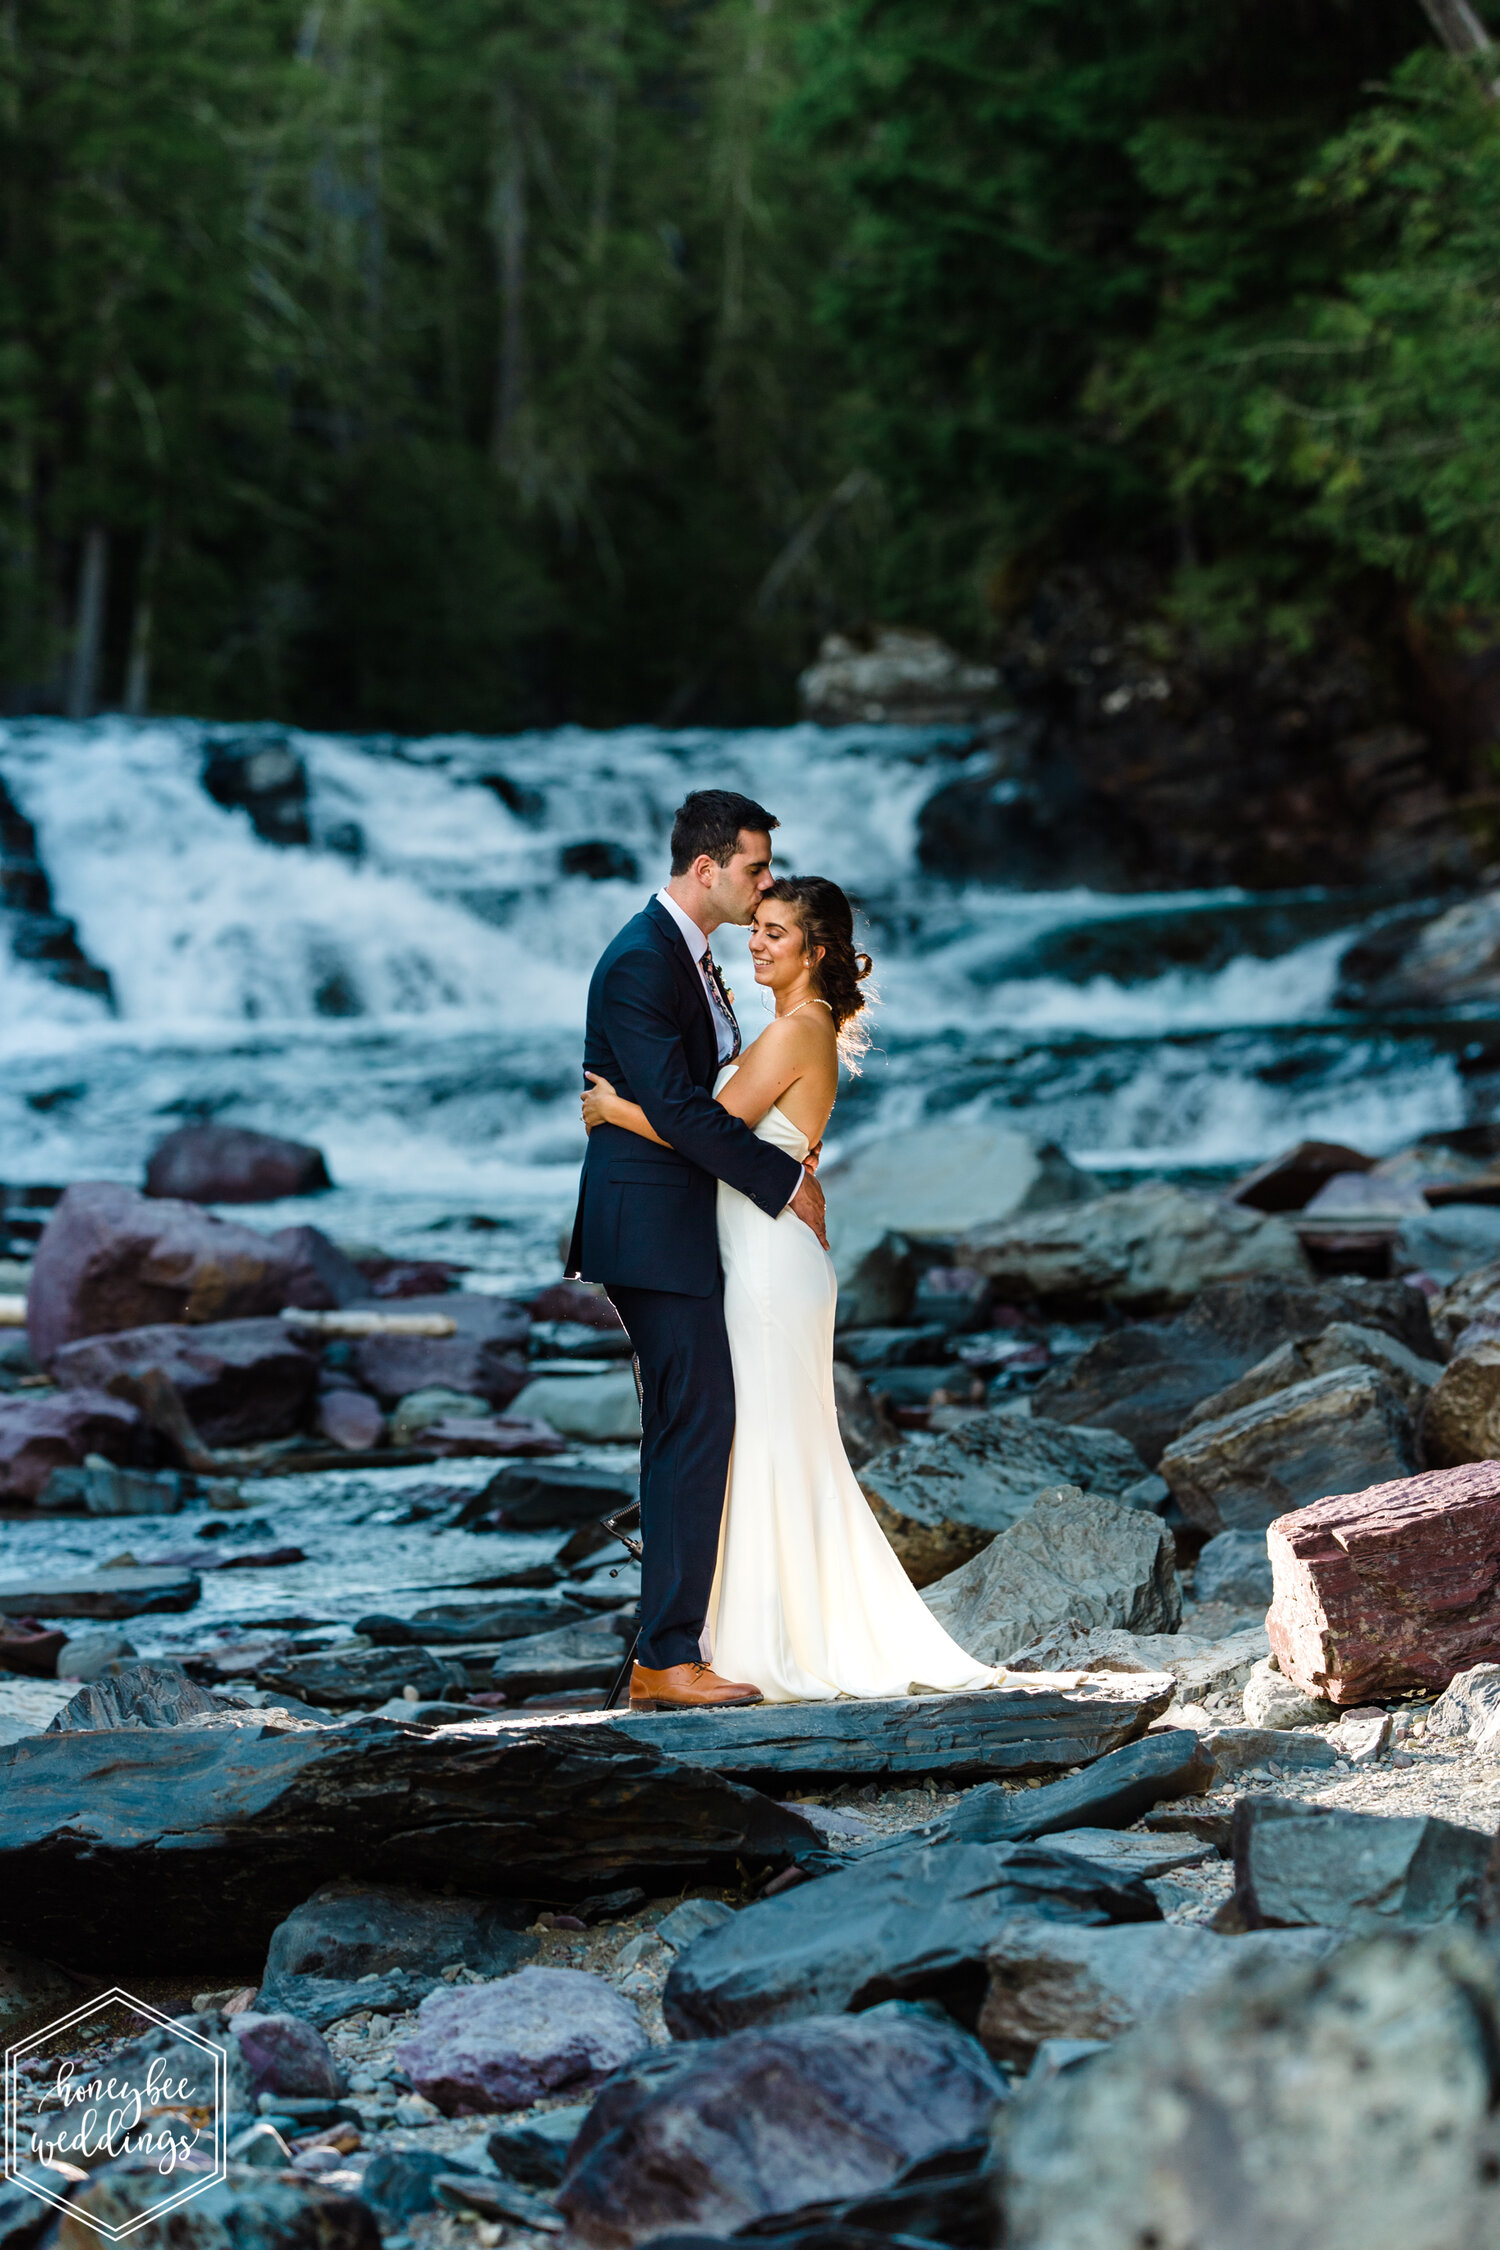 030Glacier National Park Wedding_Glacier Outdoor Center_Honeybee Weddings_Anna & Seth_July 21, 2019-1684.jpg